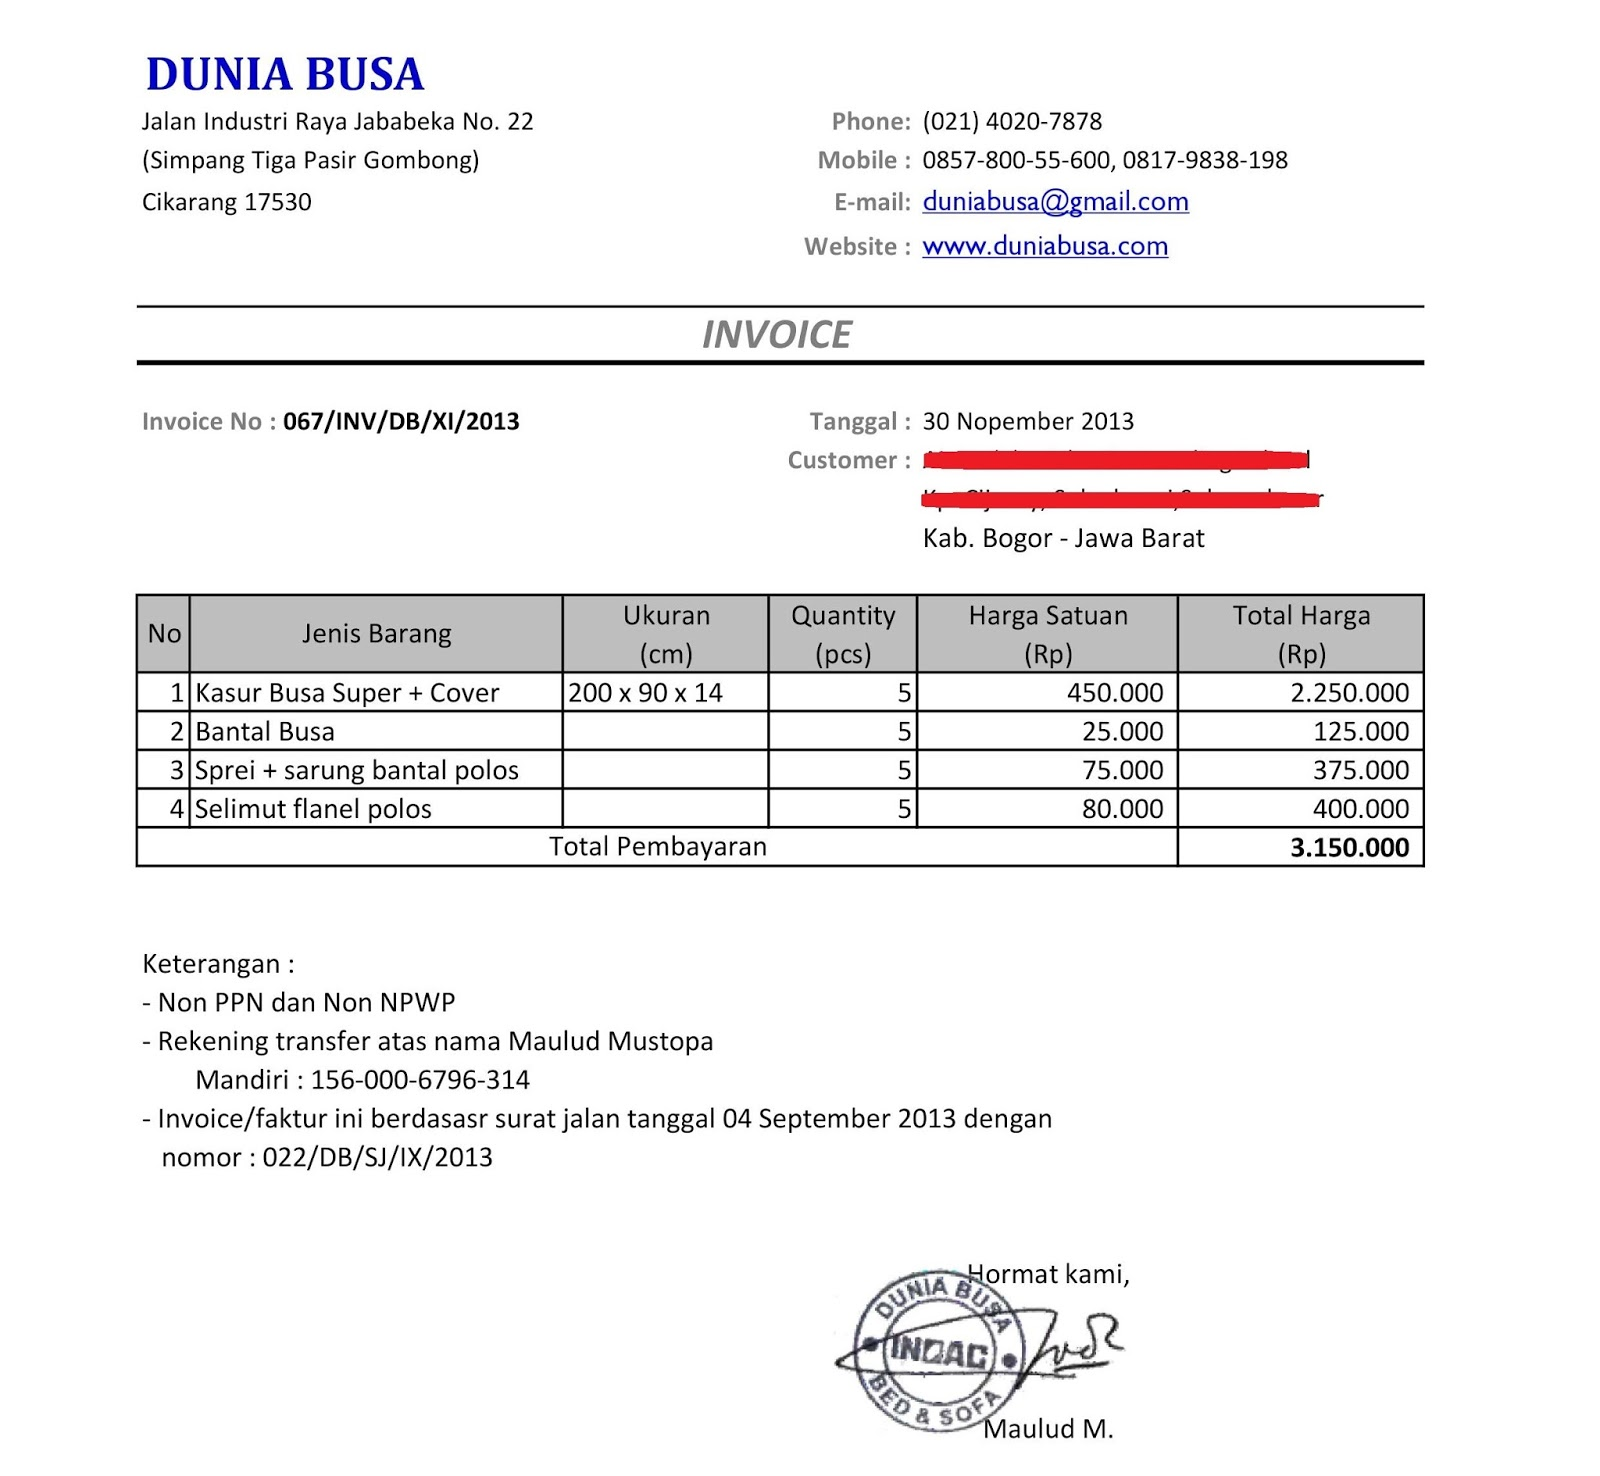 Centralasianshepherdus  Unusual Free Invoice Online  Create Invoice Online  Invoice Template  With Magnificent Contoh Format Invoice Atau Surat Tagihan  Brankas Arsip  Free Invoice Online With Enchanting What Is Invoice And Receipt Also Invoice Templates For Microsoft Word In Addition Child Care Invoice And Proforma Invoice Export As Well As Grand Cherokee Invoice Price Additionally Invoice And Estimate Software From Sklepco With Centralasianshepherdus  Magnificent Free Invoice Online  Create Invoice Online  Invoice Template  With Enchanting Contoh Format Invoice Atau Surat Tagihan  Brankas Arsip  Free Invoice Online And Unusual What Is Invoice And Receipt Also Invoice Templates For Microsoft Word In Addition Child Care Invoice From Sklepco